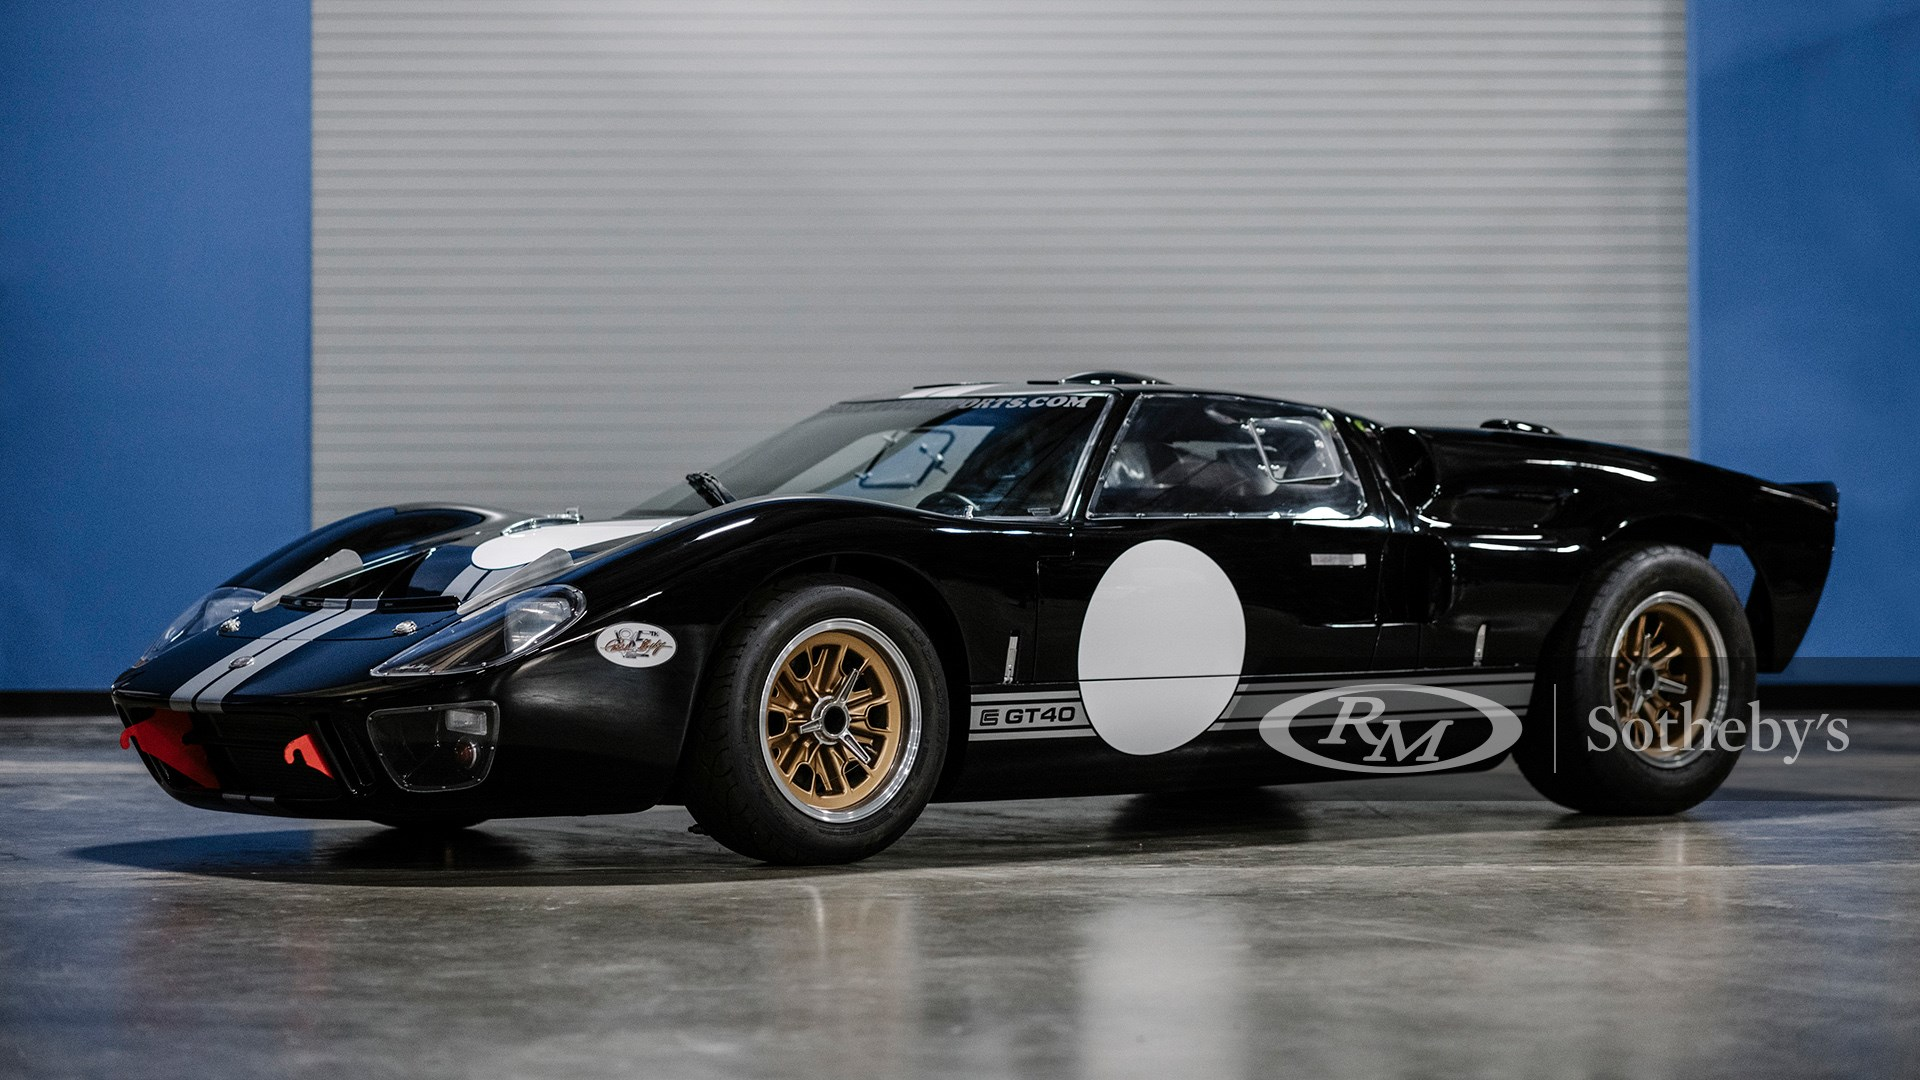 RM Sotheby's Arizona Scottsdale 2021, Blog, 2008 Shelby GT40 Mk II 85th Commemorative Edition